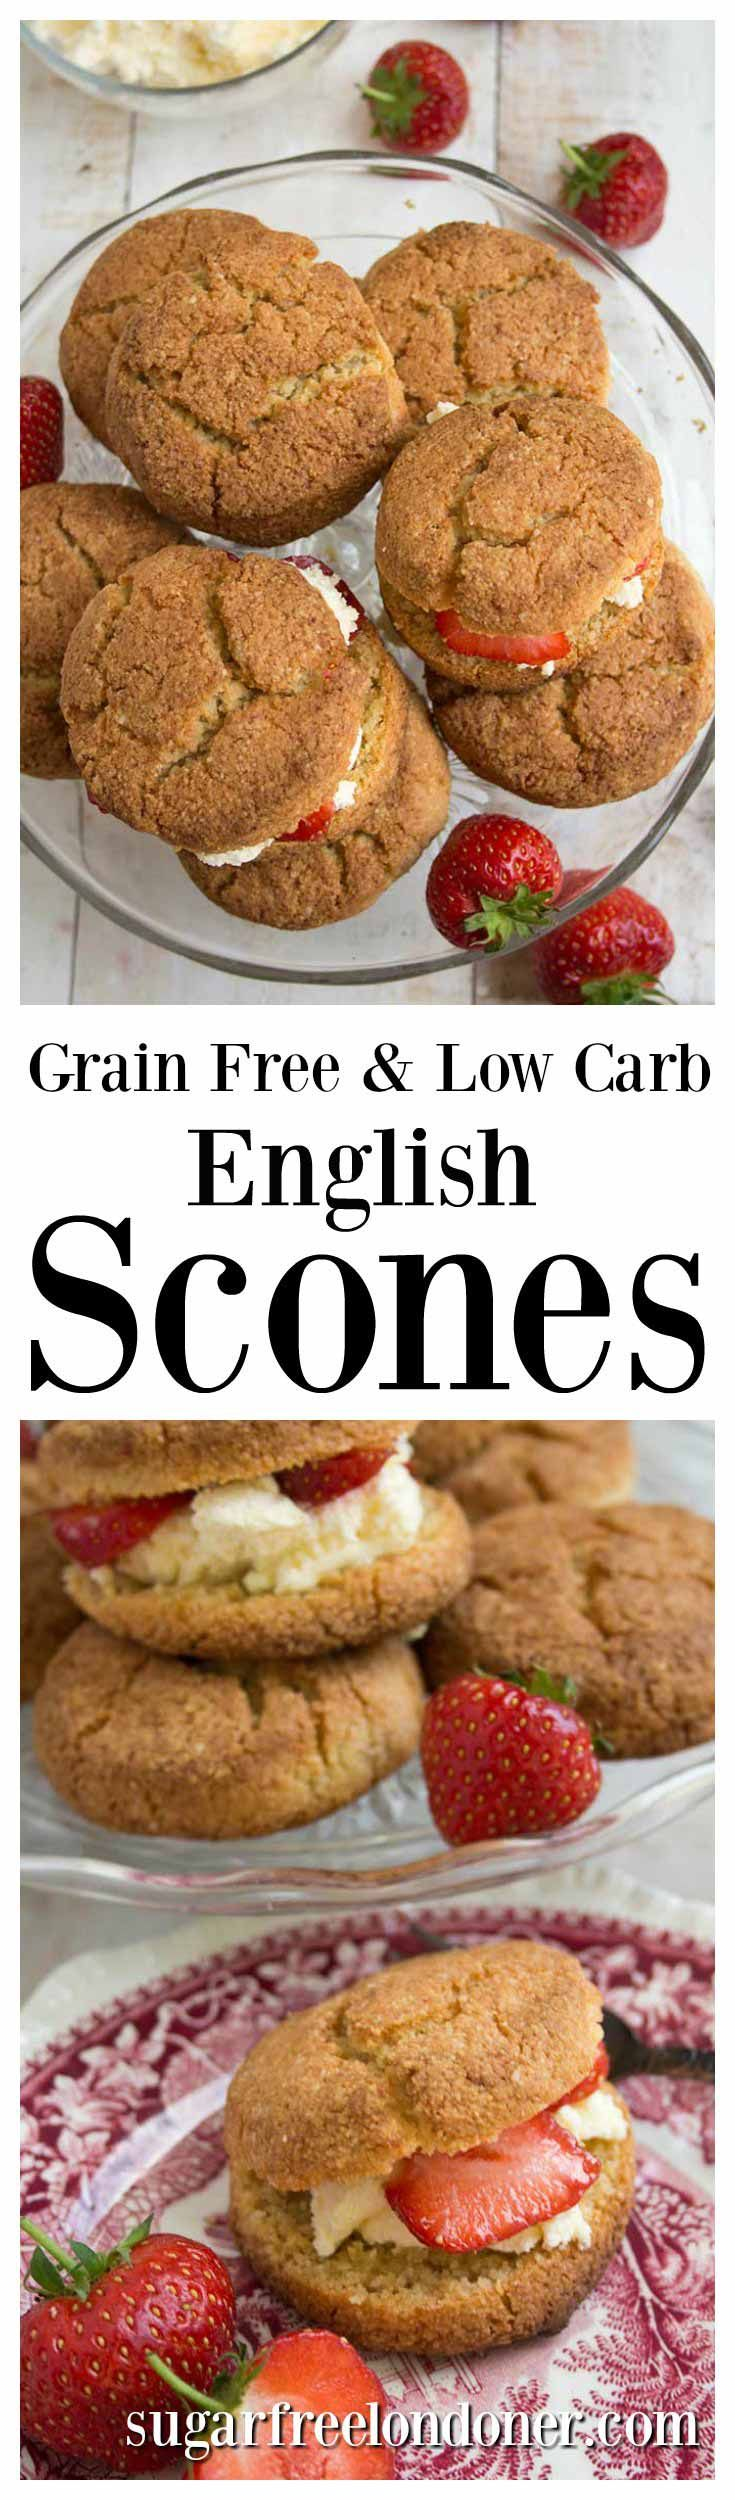 Easy and quick to make with only 6 ingredients! Fluffy, light and moist grain free English scones - best enjoyed with strawberries and cream. Perfect for low carb and keto diets.